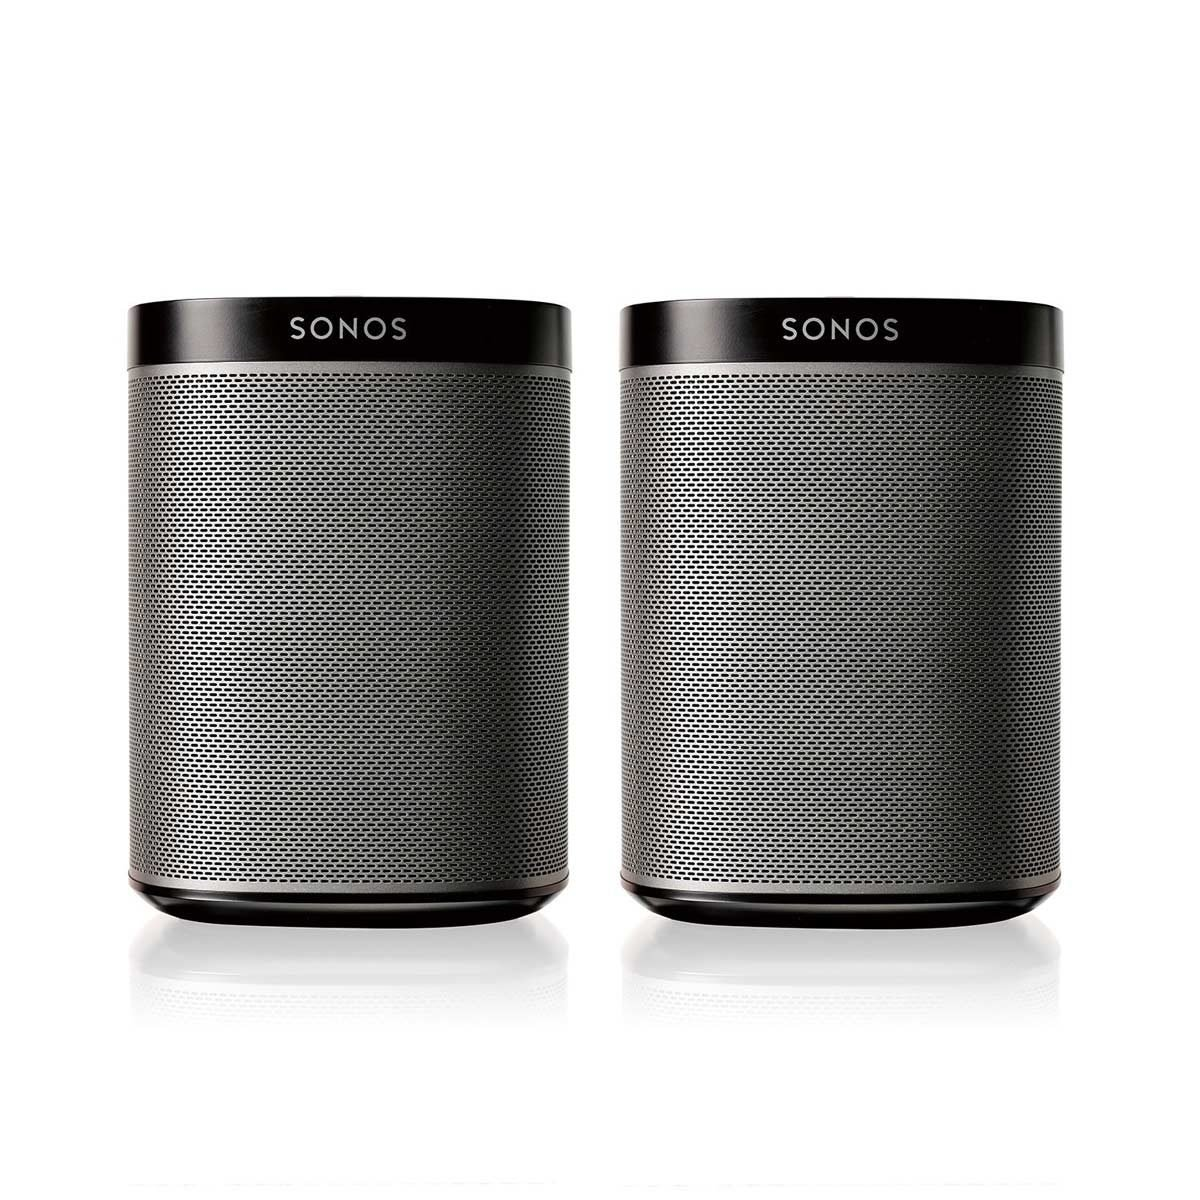 Sonos Wireless Speaker System